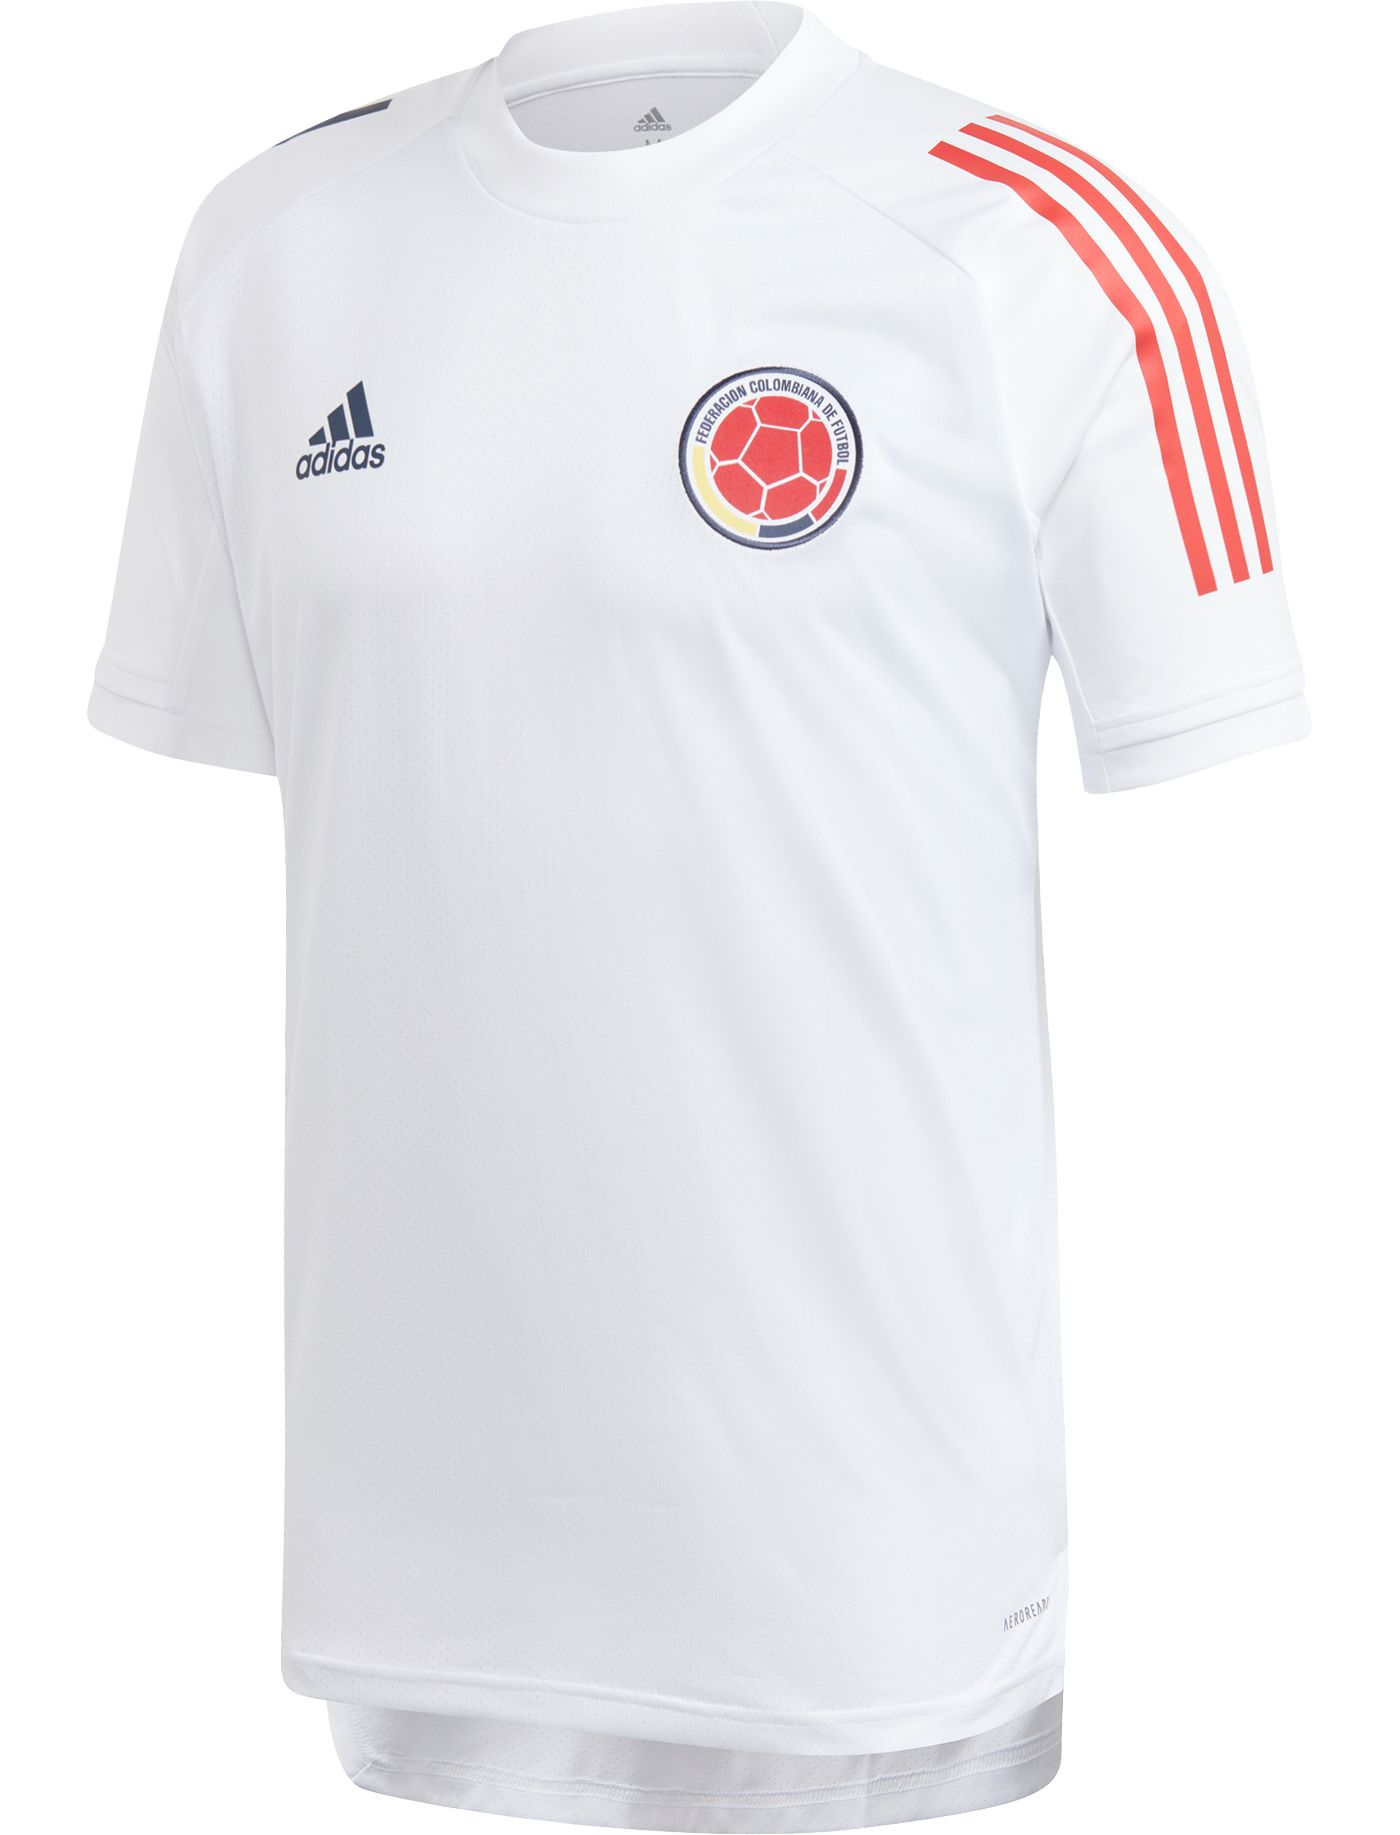 adidas Men's Colombia '19 White Training Jersey